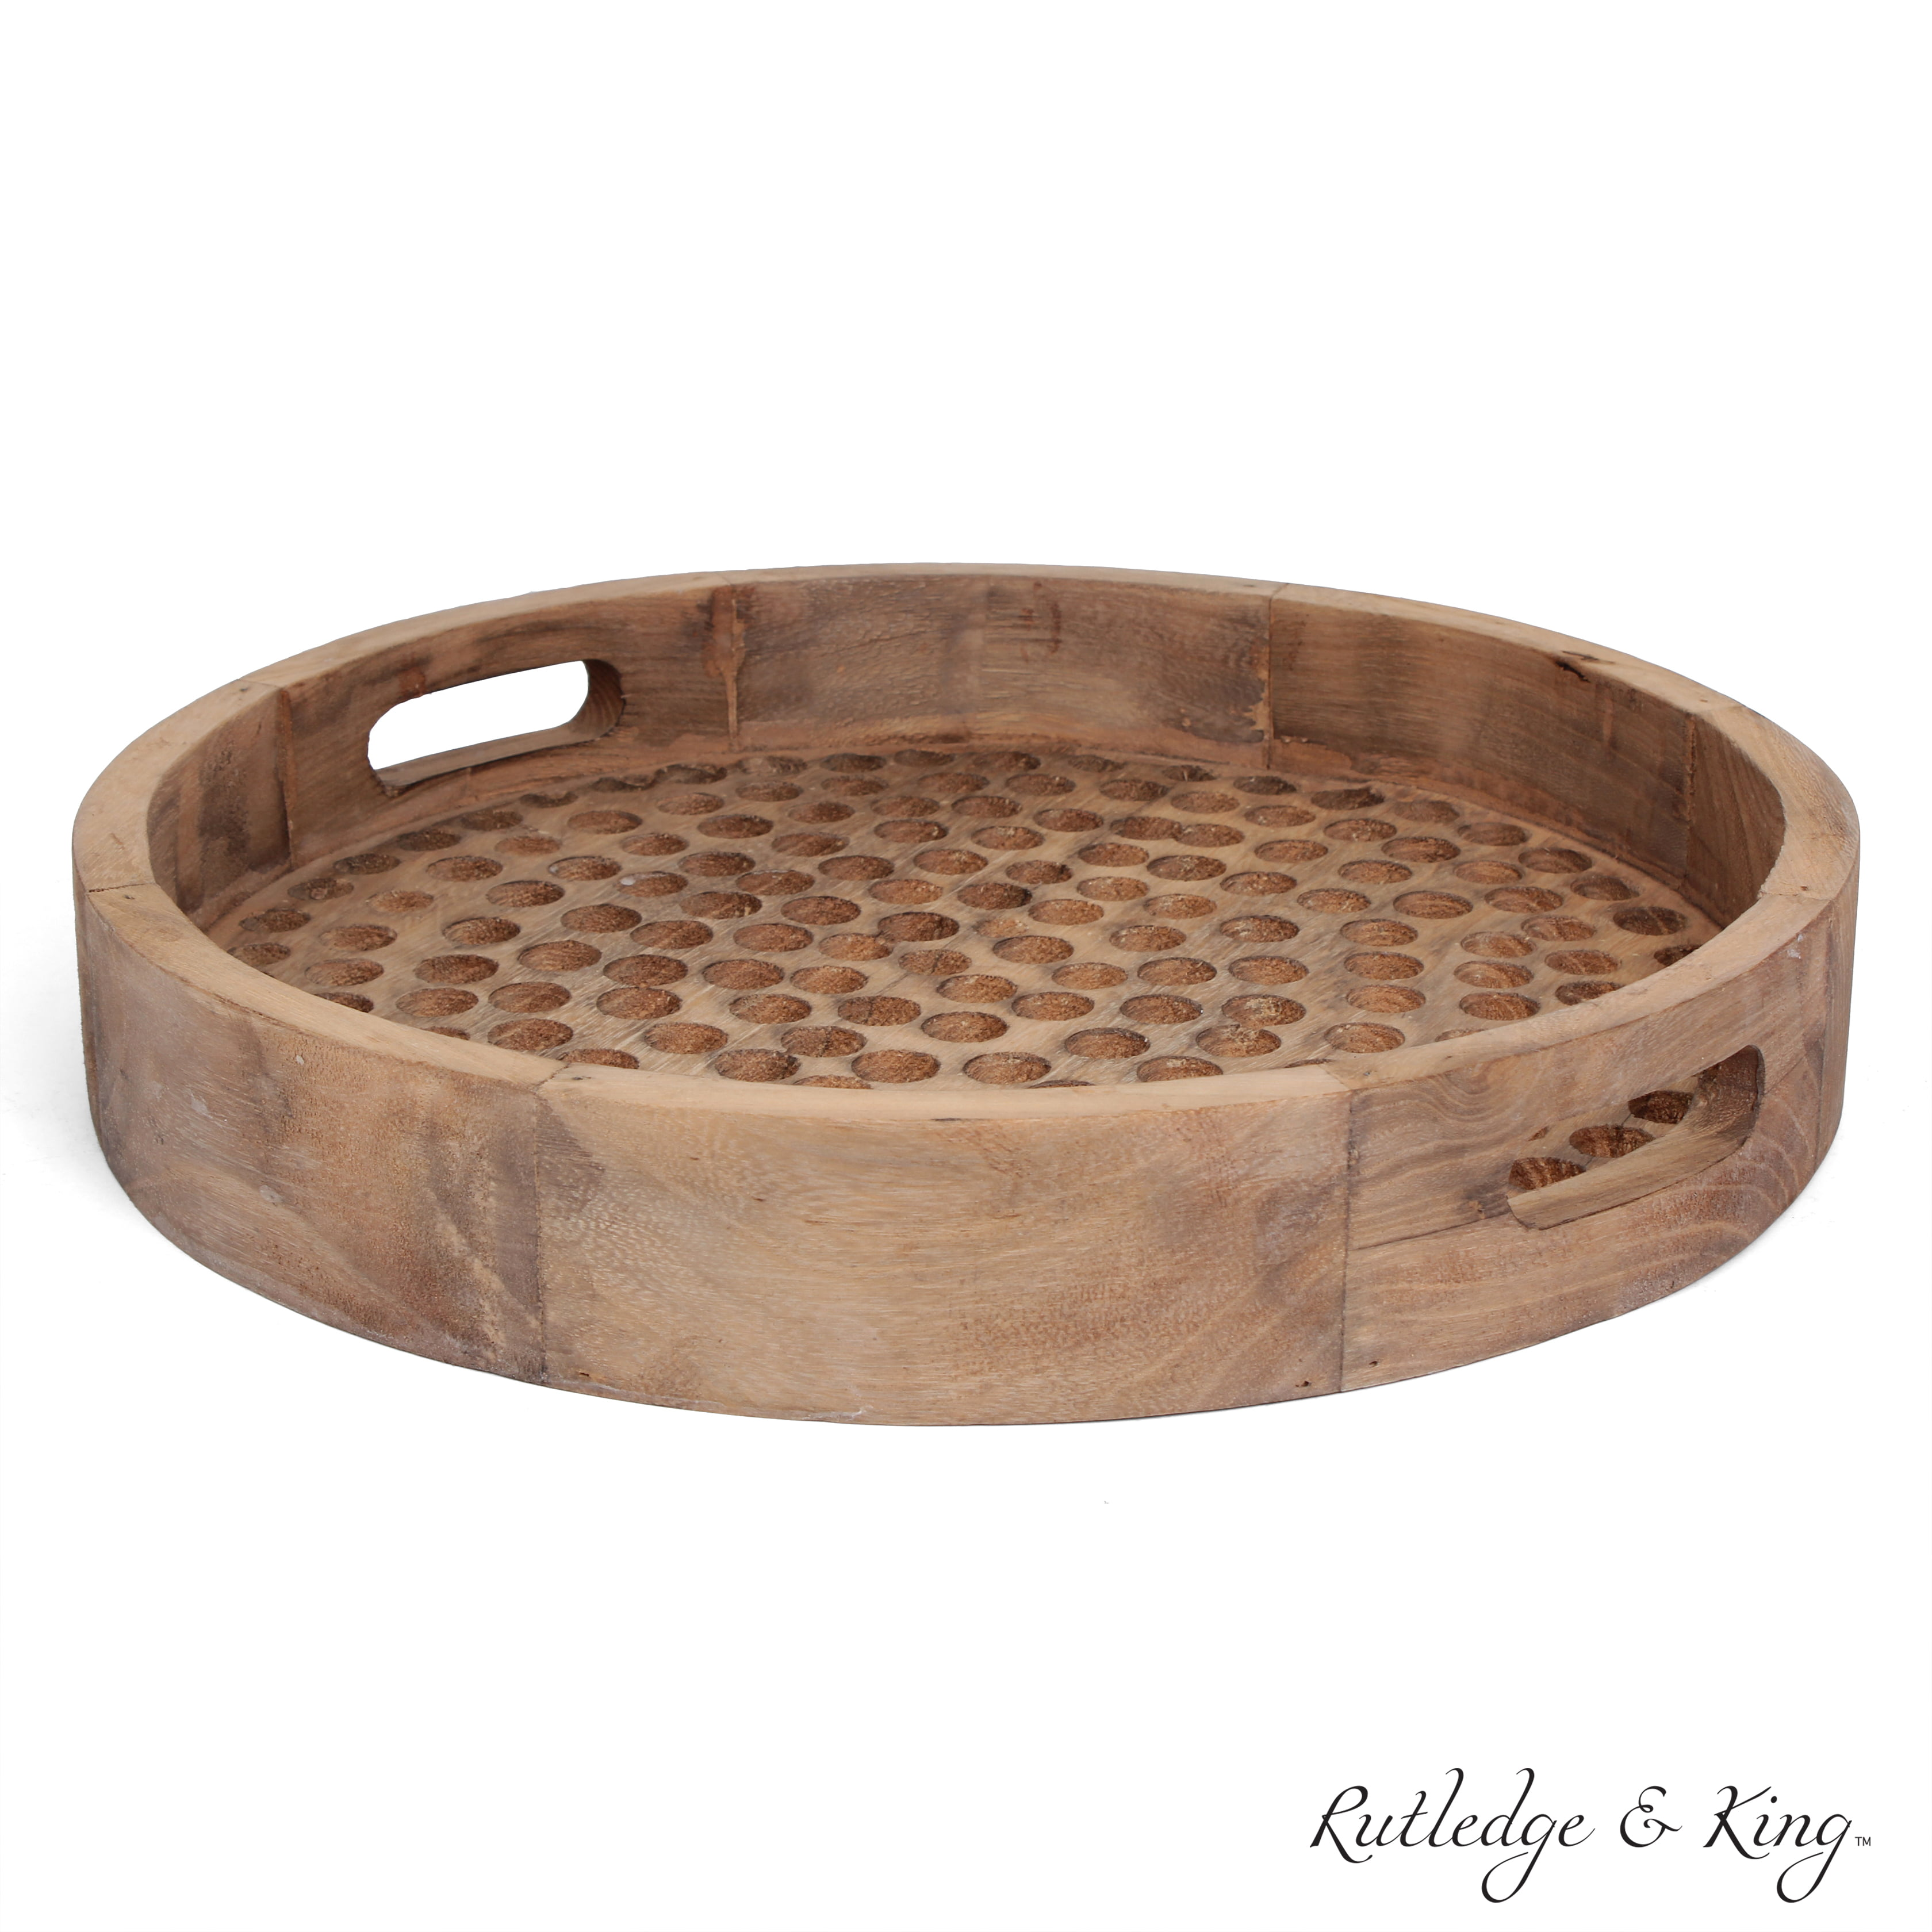 Rutledge King Brighton Serving Tray Ottoman Tray Decorative Tray Coffee Table Tray Round Wooden Tray Breakfast In Bed Tray With Handles Rustic Wood Tray Walmart Com Walmart Com